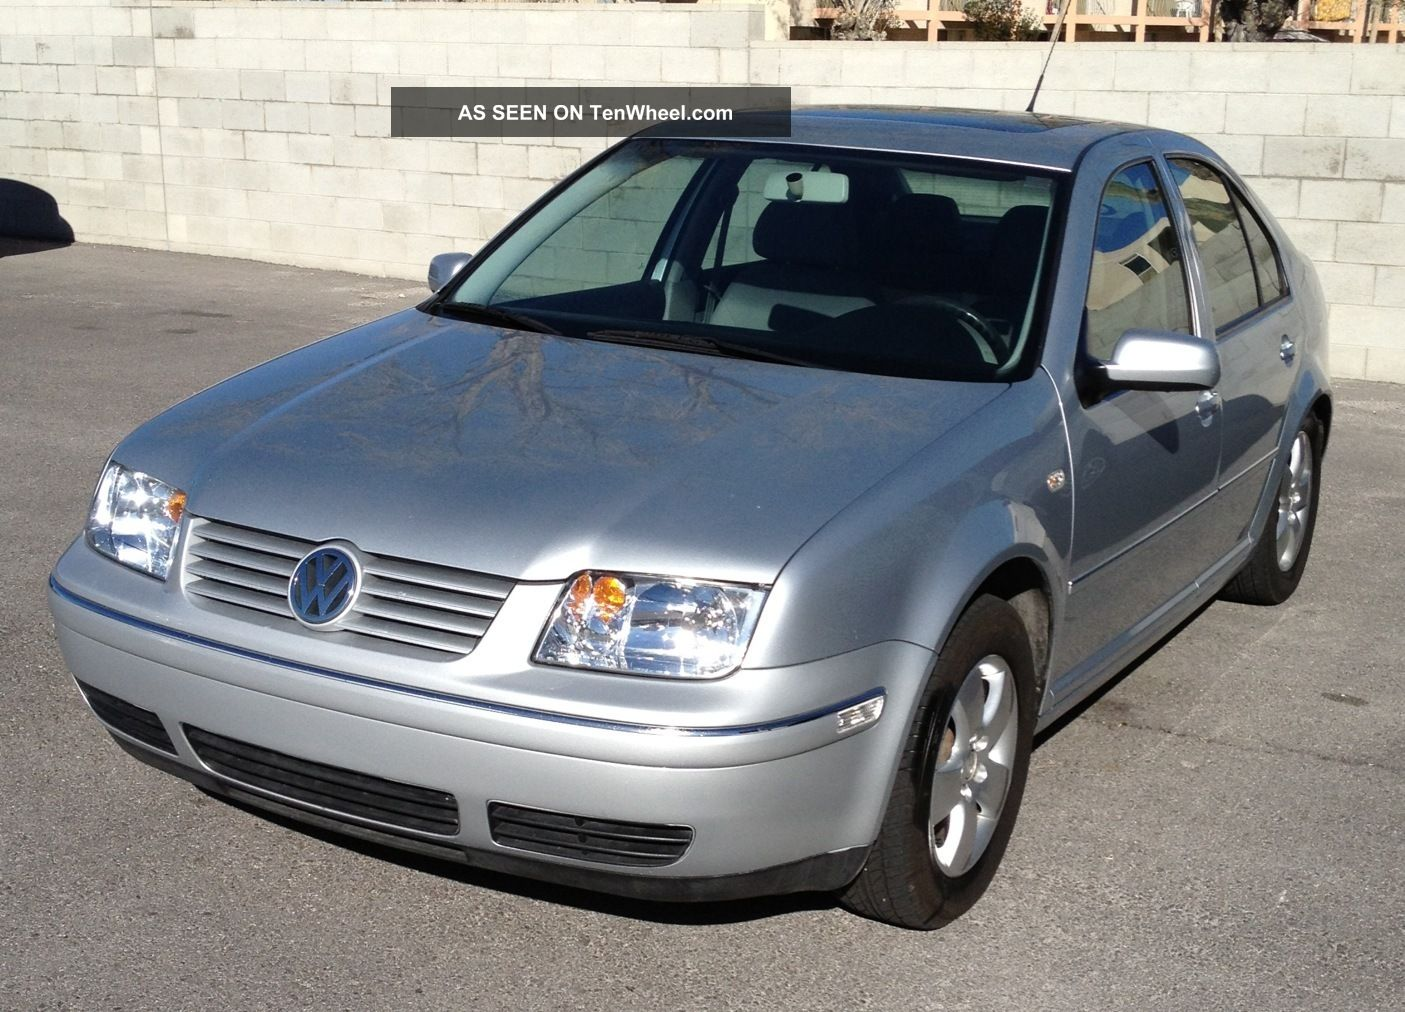 2004 volkswagen jetta sedan 2 0 automatic related. Black Bedroom Furniture Sets. Home Design Ideas